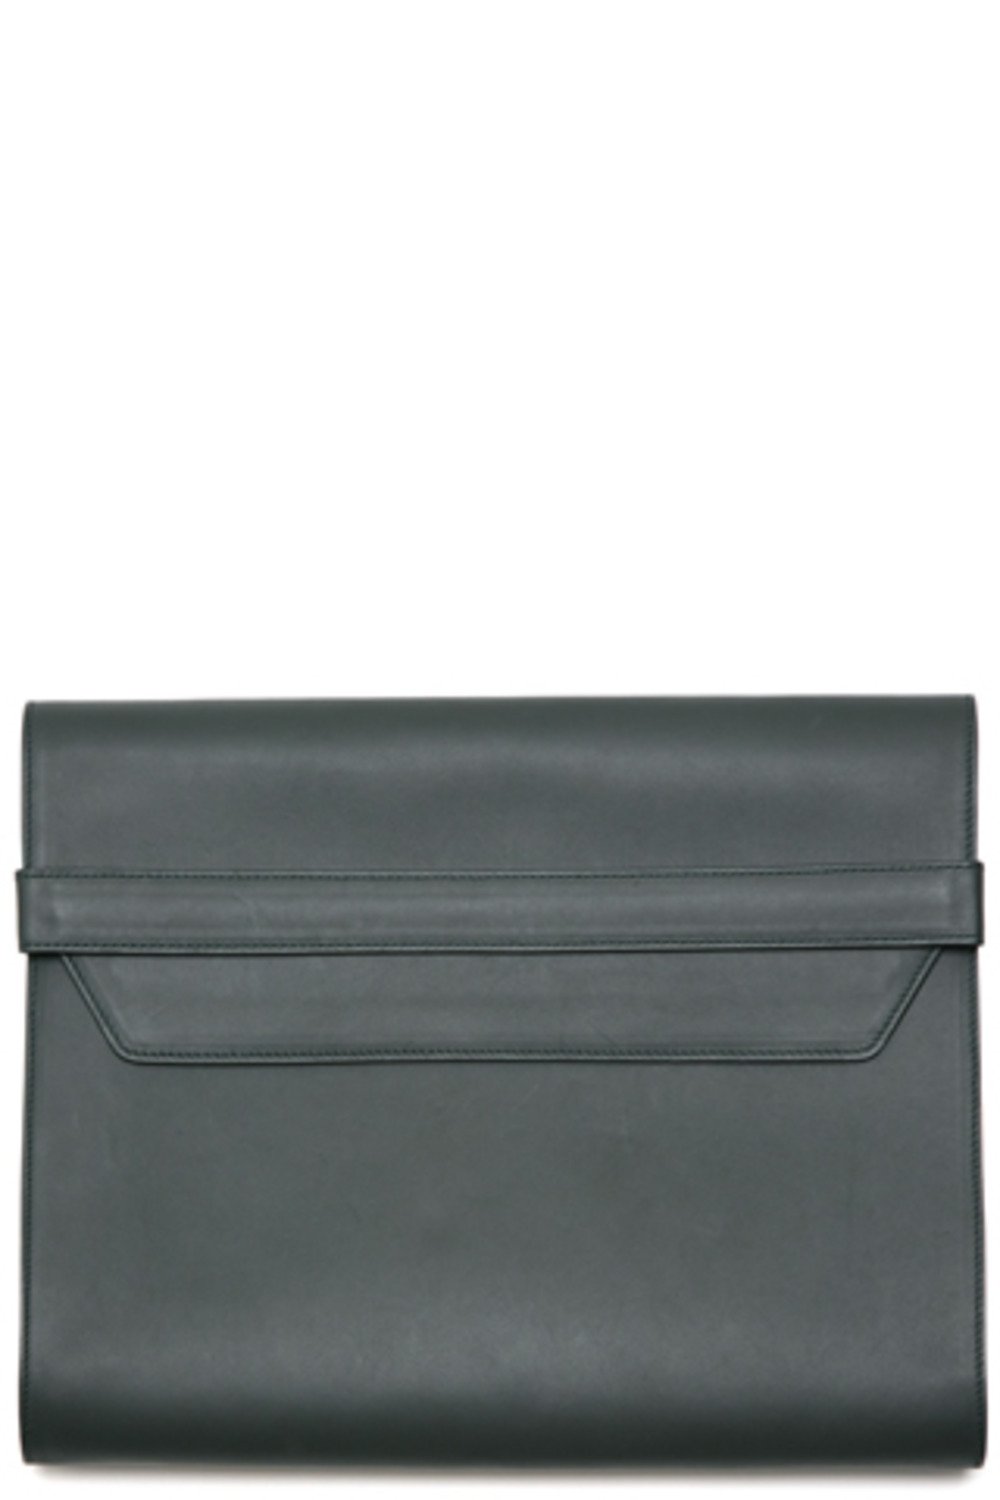 DarkGreen Leather Portfolio